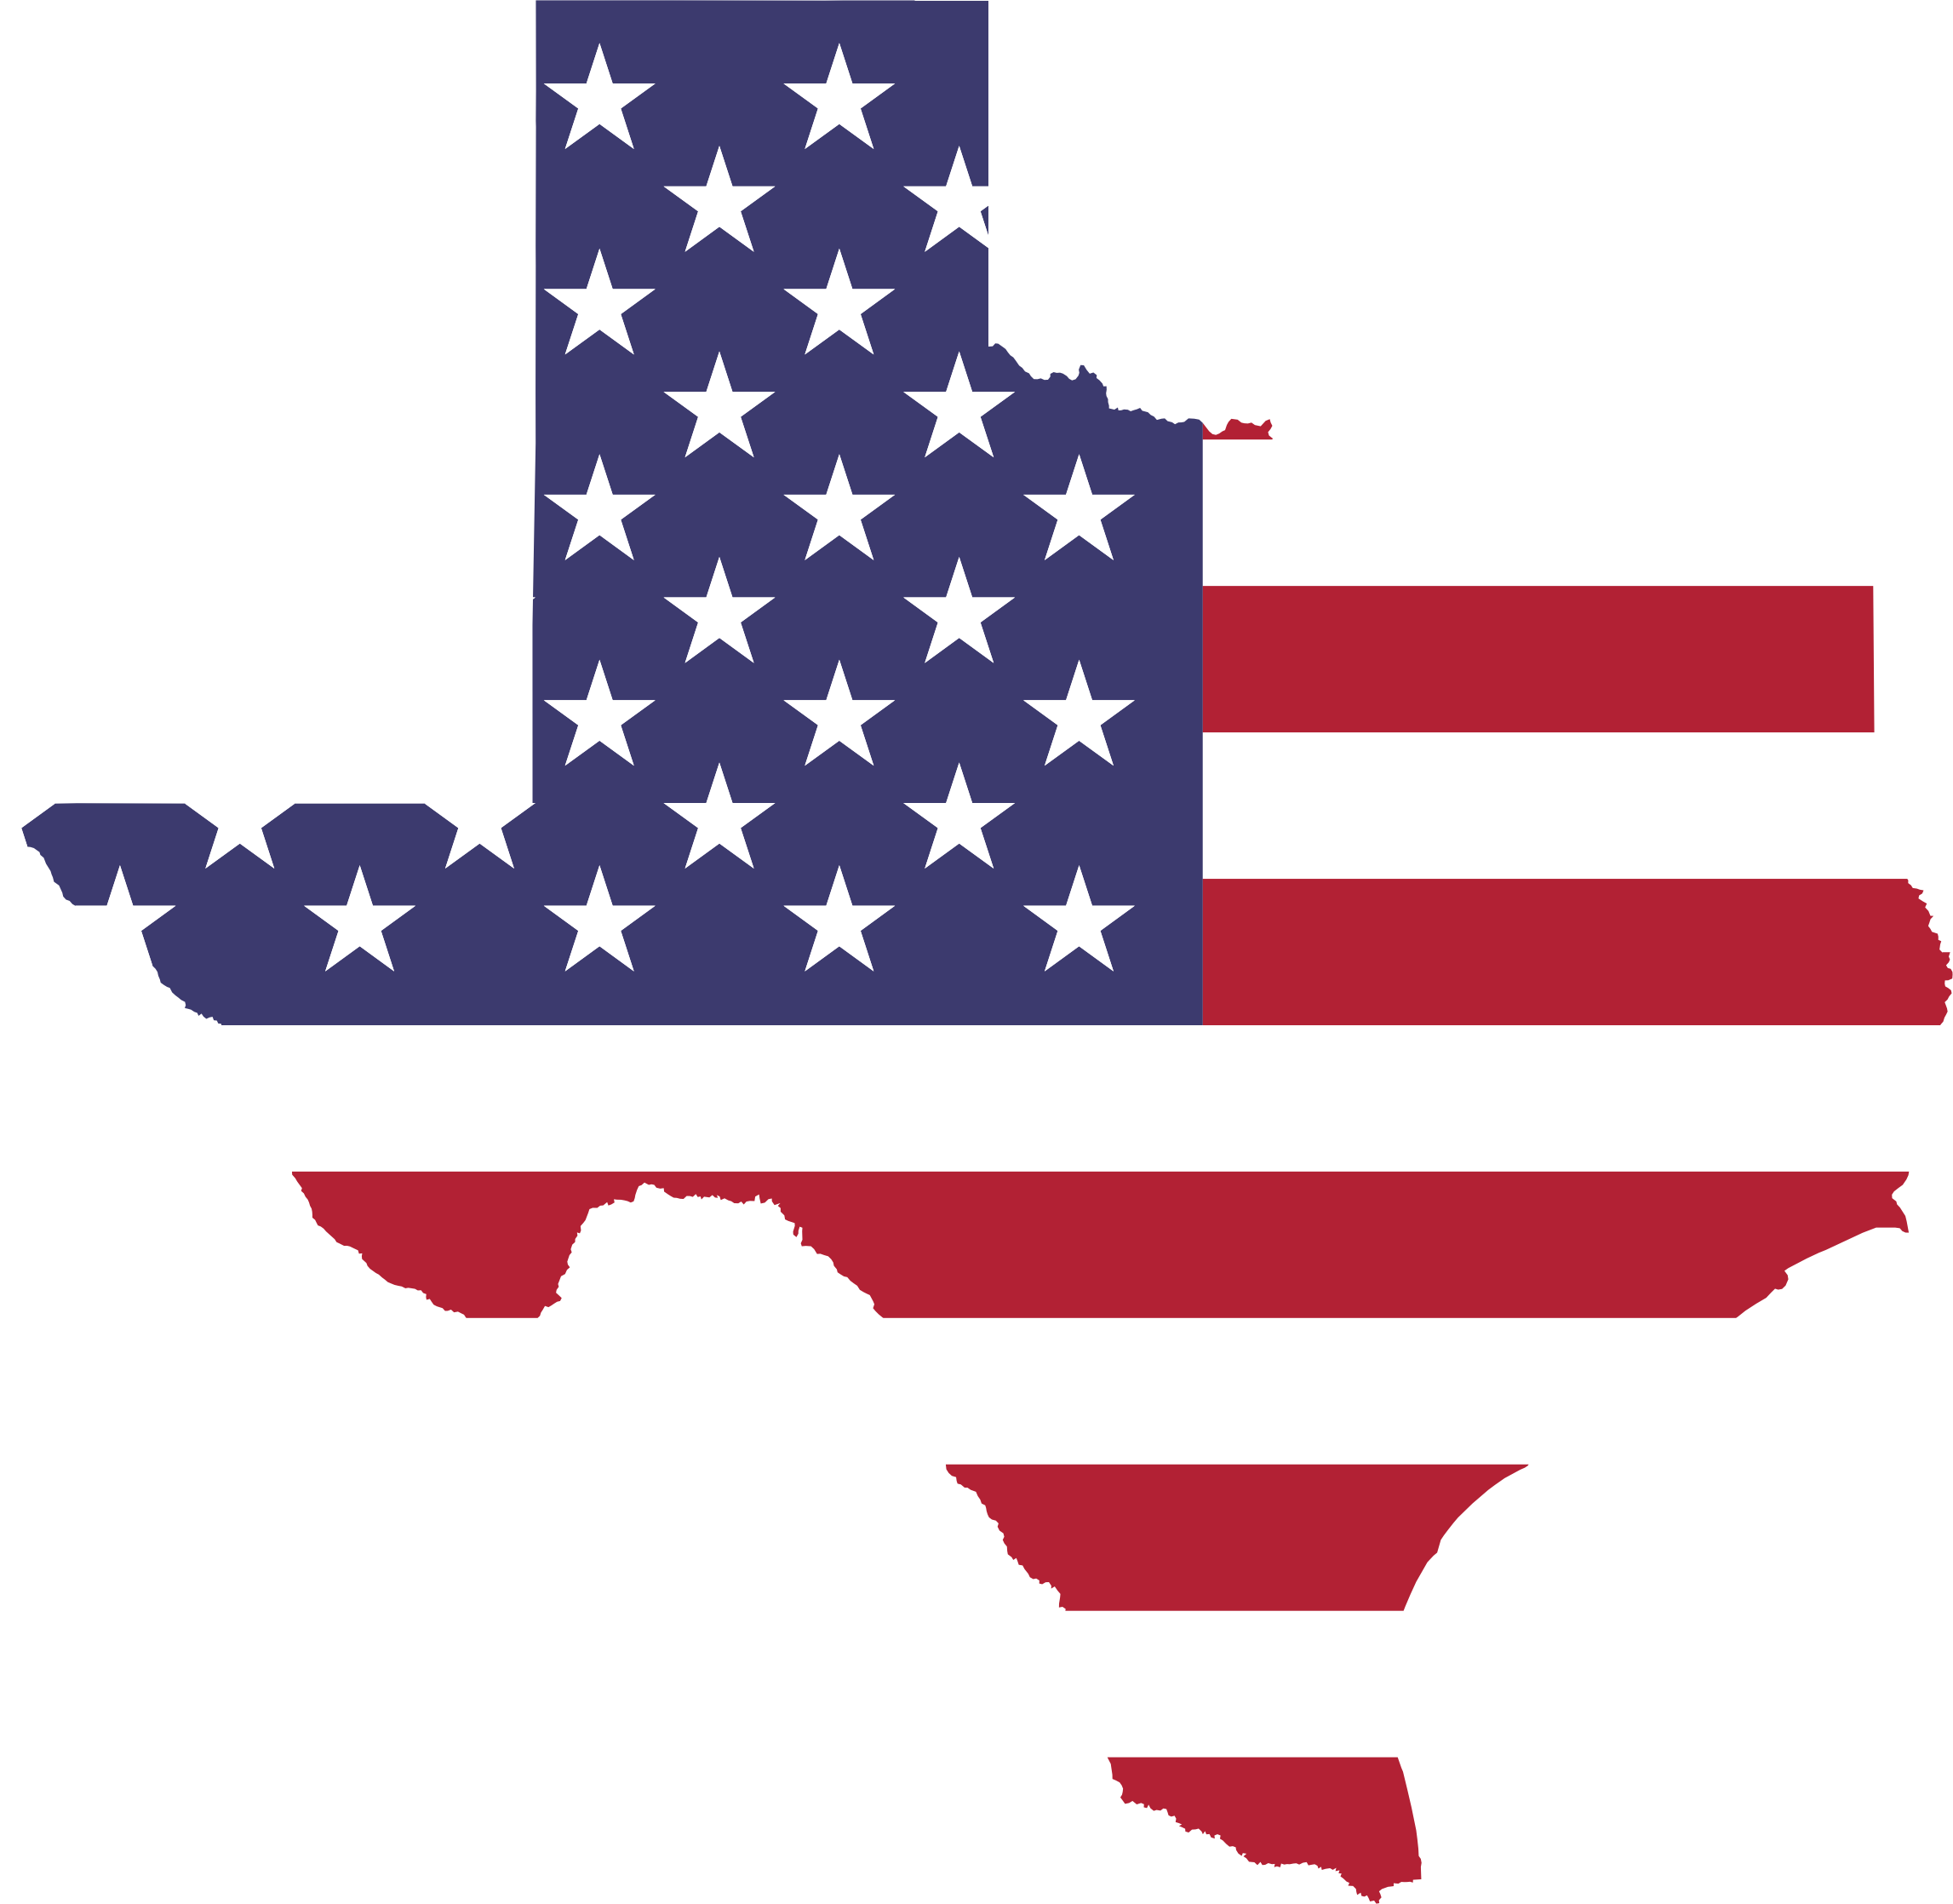 Clipart Texas American Flag Map No Stroke - Us map red png